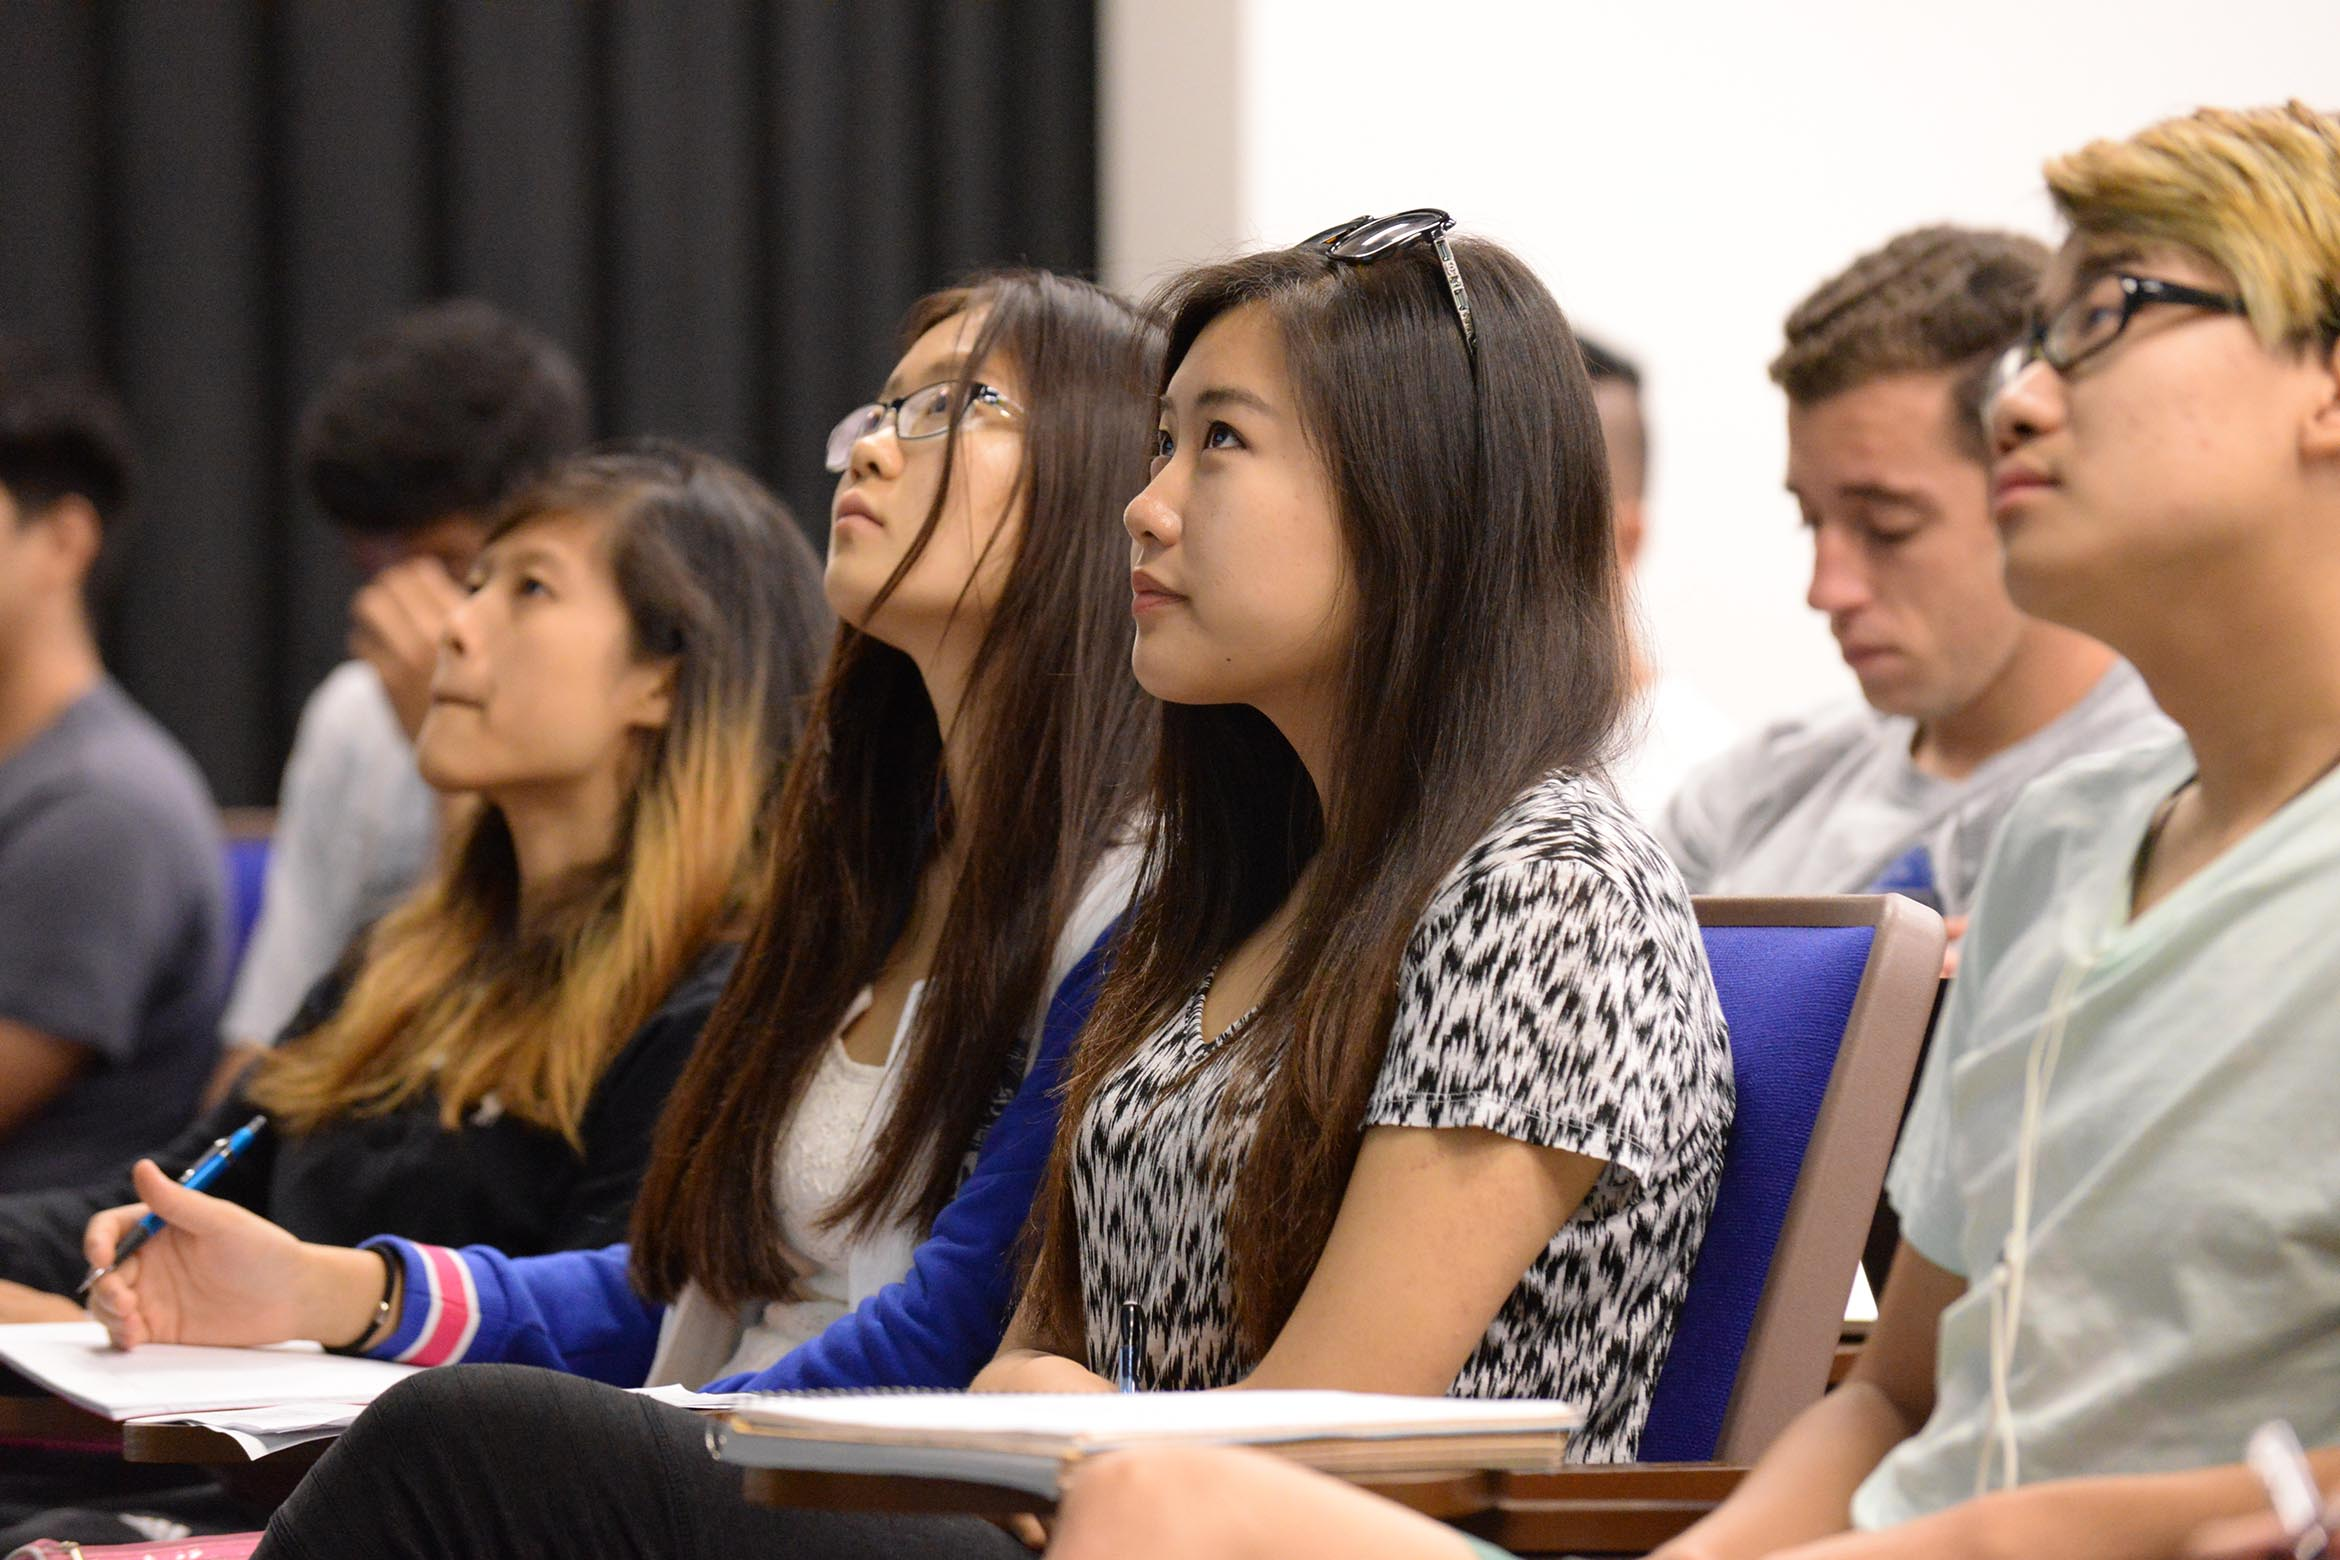 A group of students listen to a lecture.